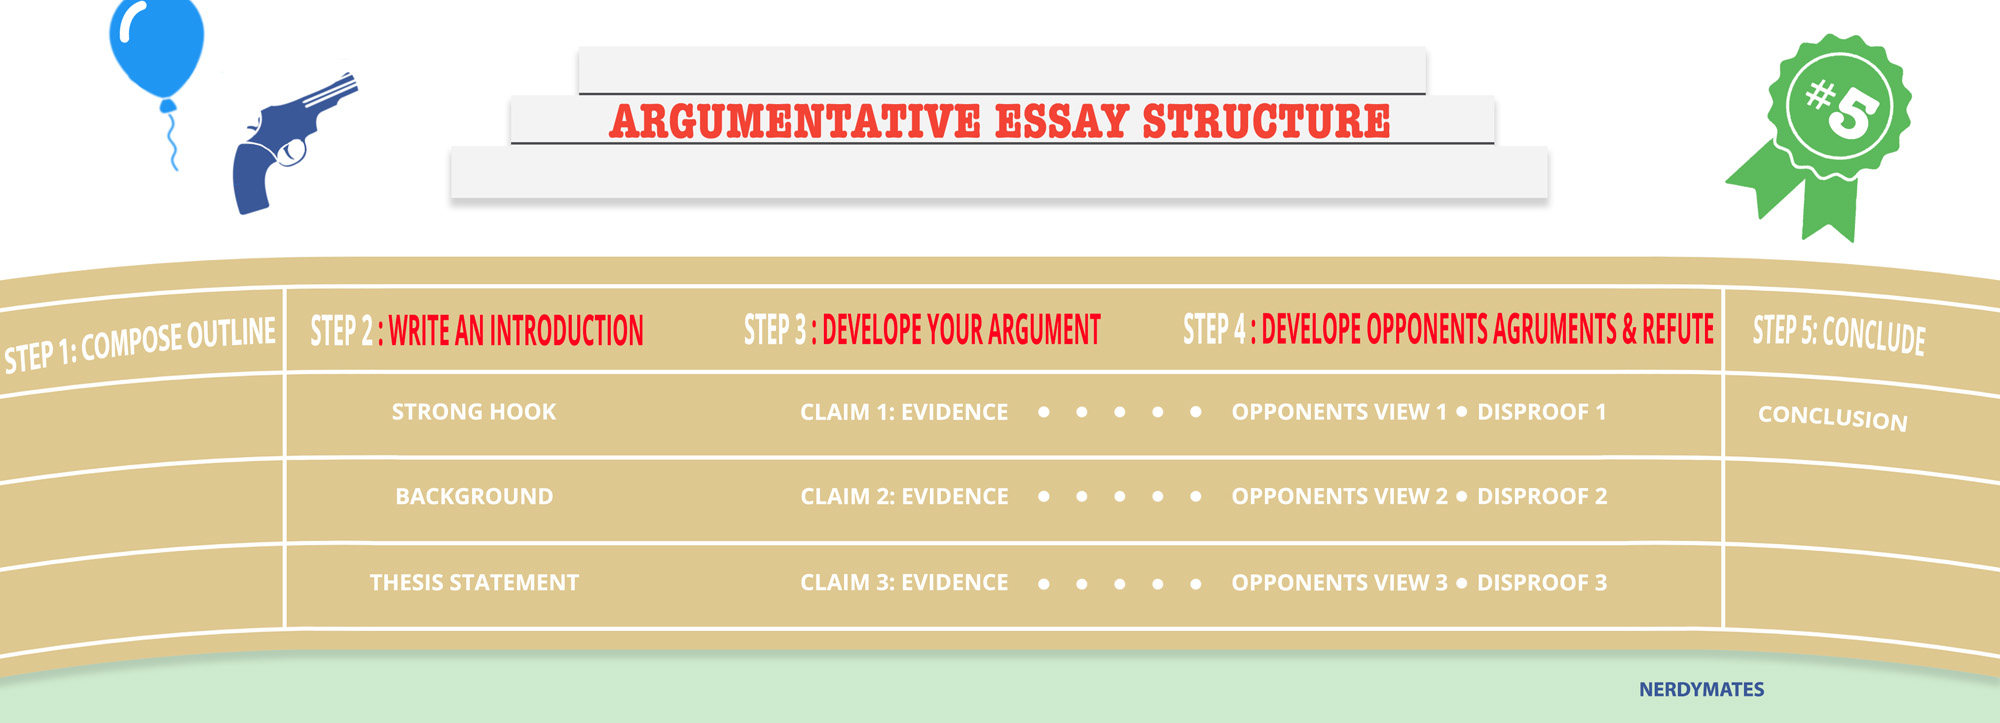 steps for writing an argumentative essay A good introduction in an argumentative essay acts like a good opening statement in a trial just like a lawyer, a writer must present the issue at hand, give background, and put forth the main.